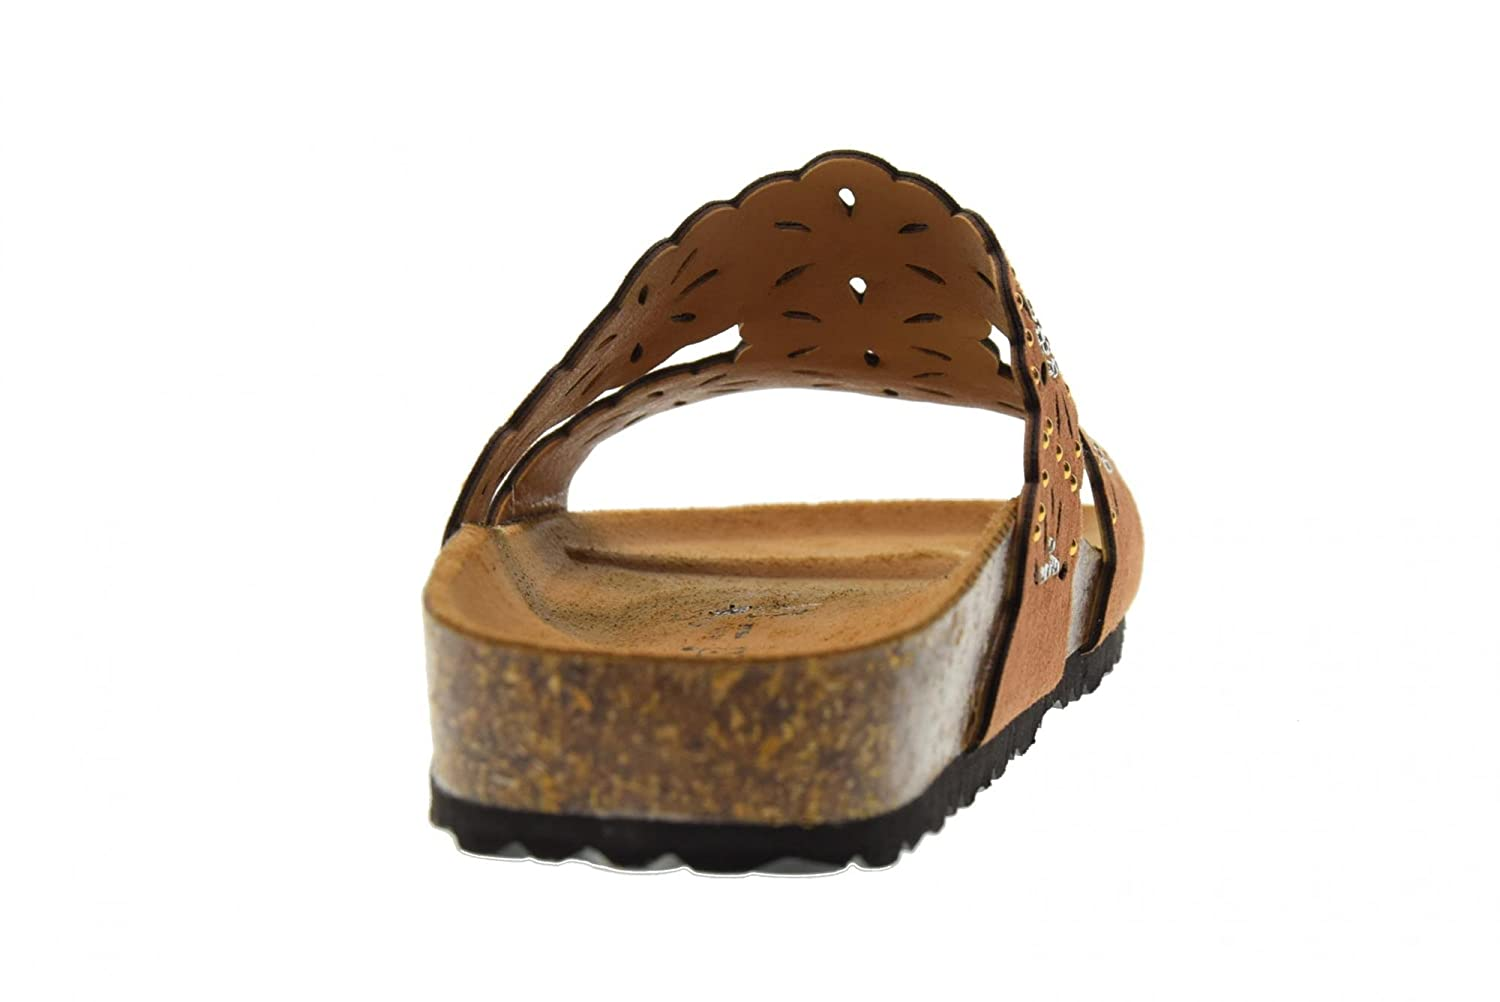 GOLDSTAR Shoes Woman Sandals Slippers 1859MB Cuoio